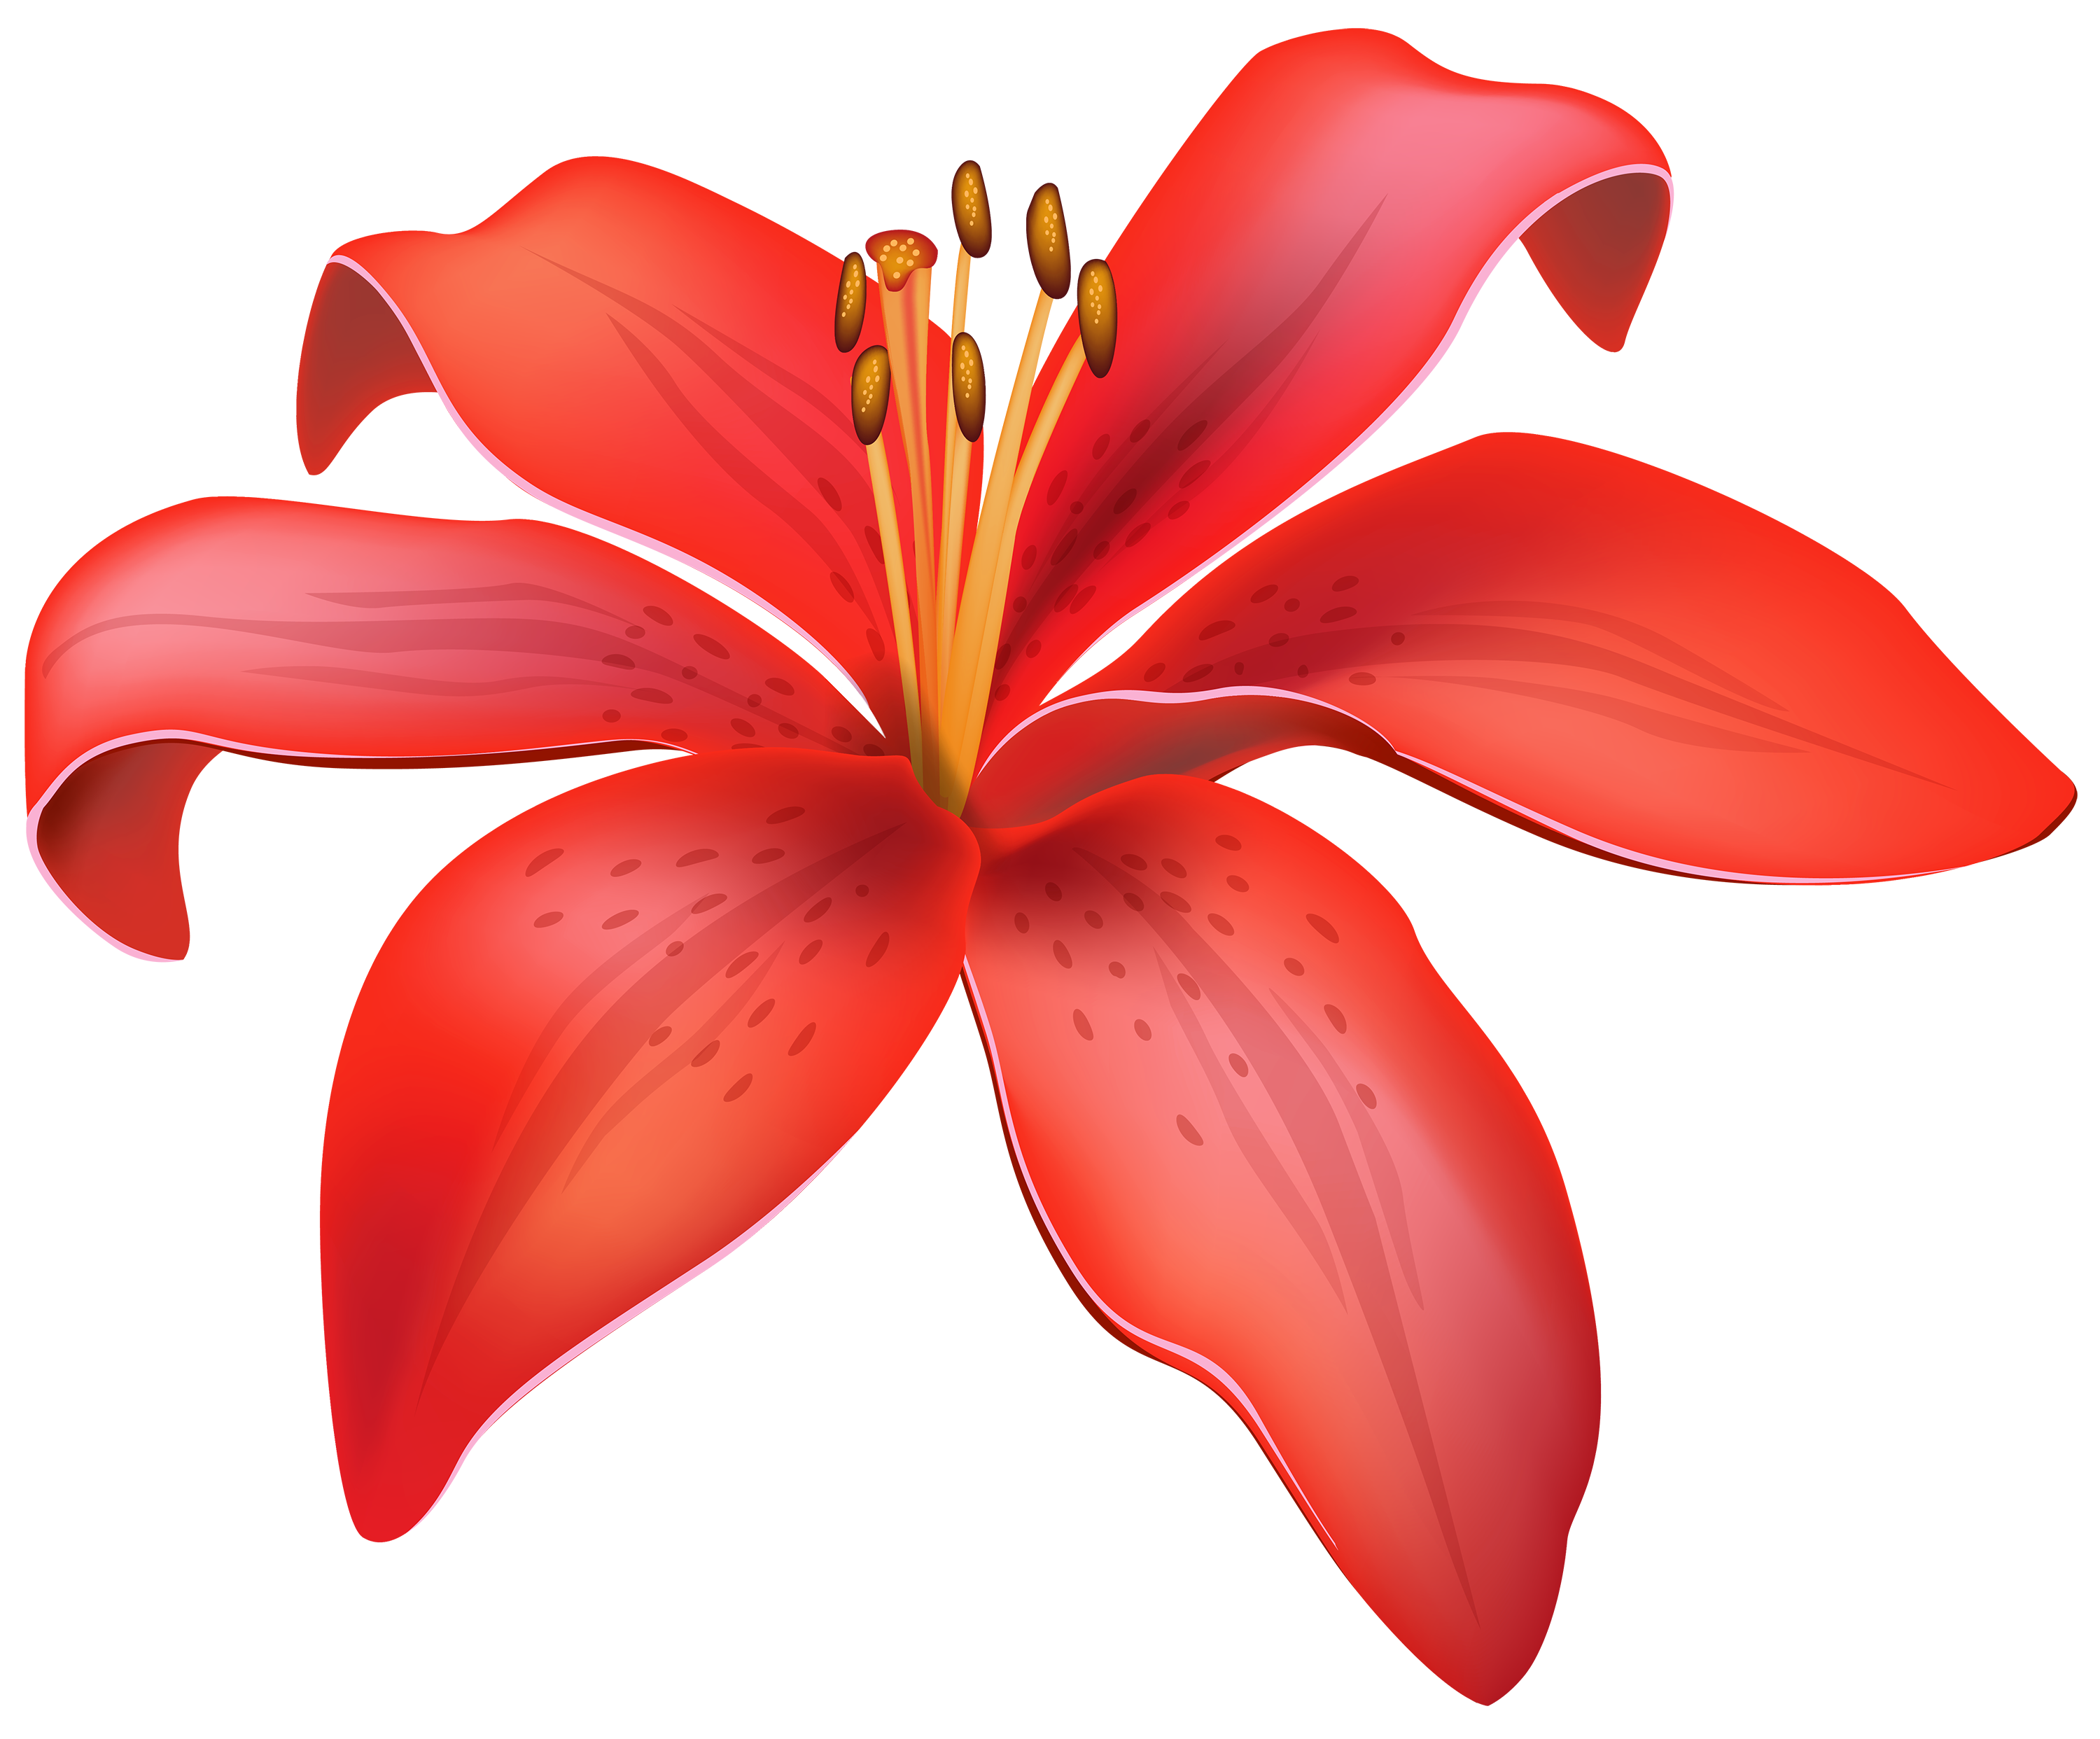 Red Lily PNG HD image #46492